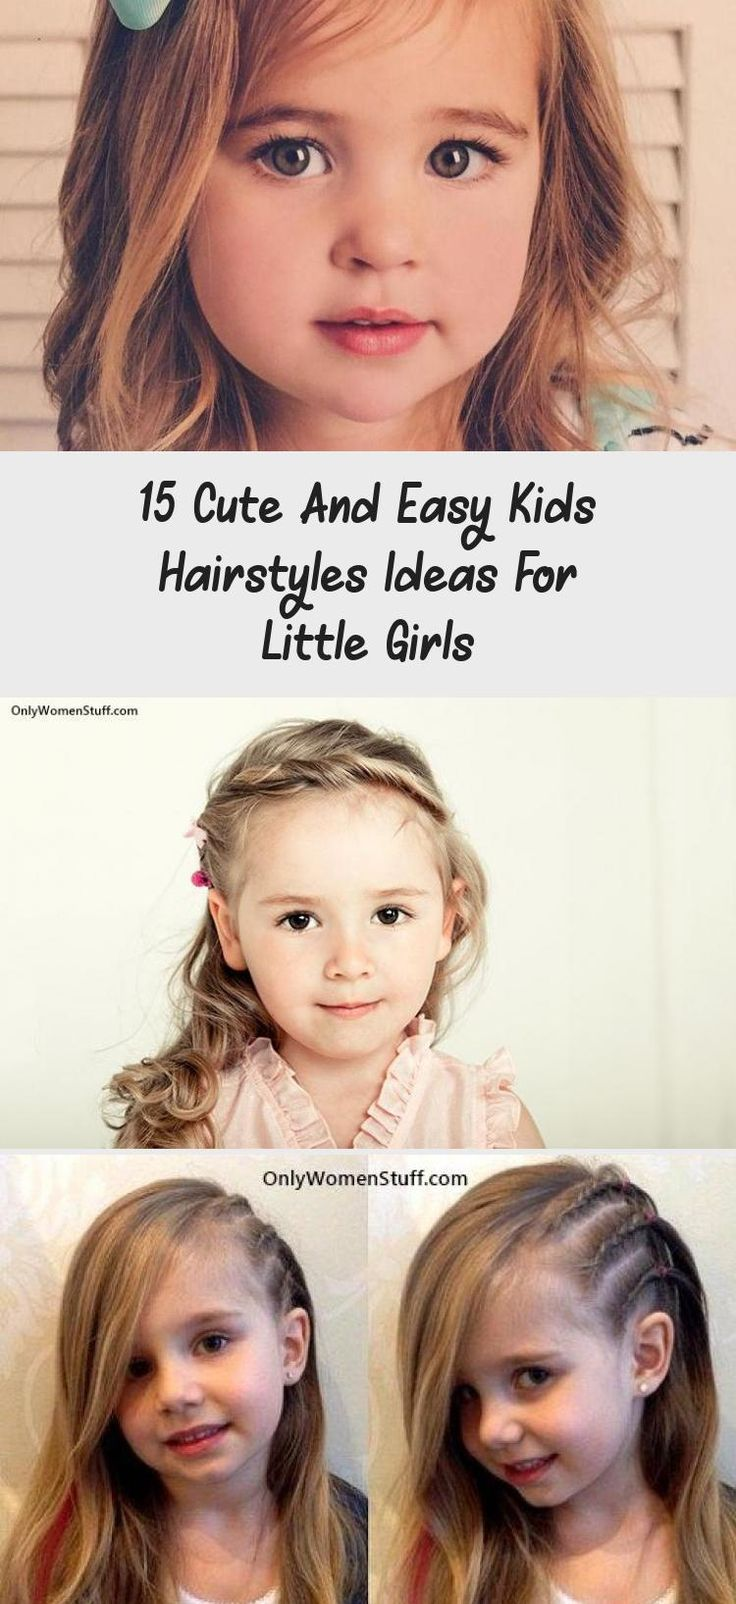 Simple Hairstyle for kids, Best kids hairstyles, Easy Kids Hairstyles, Cute Hairstyles for Little Girls, DIY Hairstyles for Little girls #babyhairstylesBun #babyhairstylesWavy #babyhairstylesWithBows #6Monthbabyhairstyles #babyhairstylesMohawk